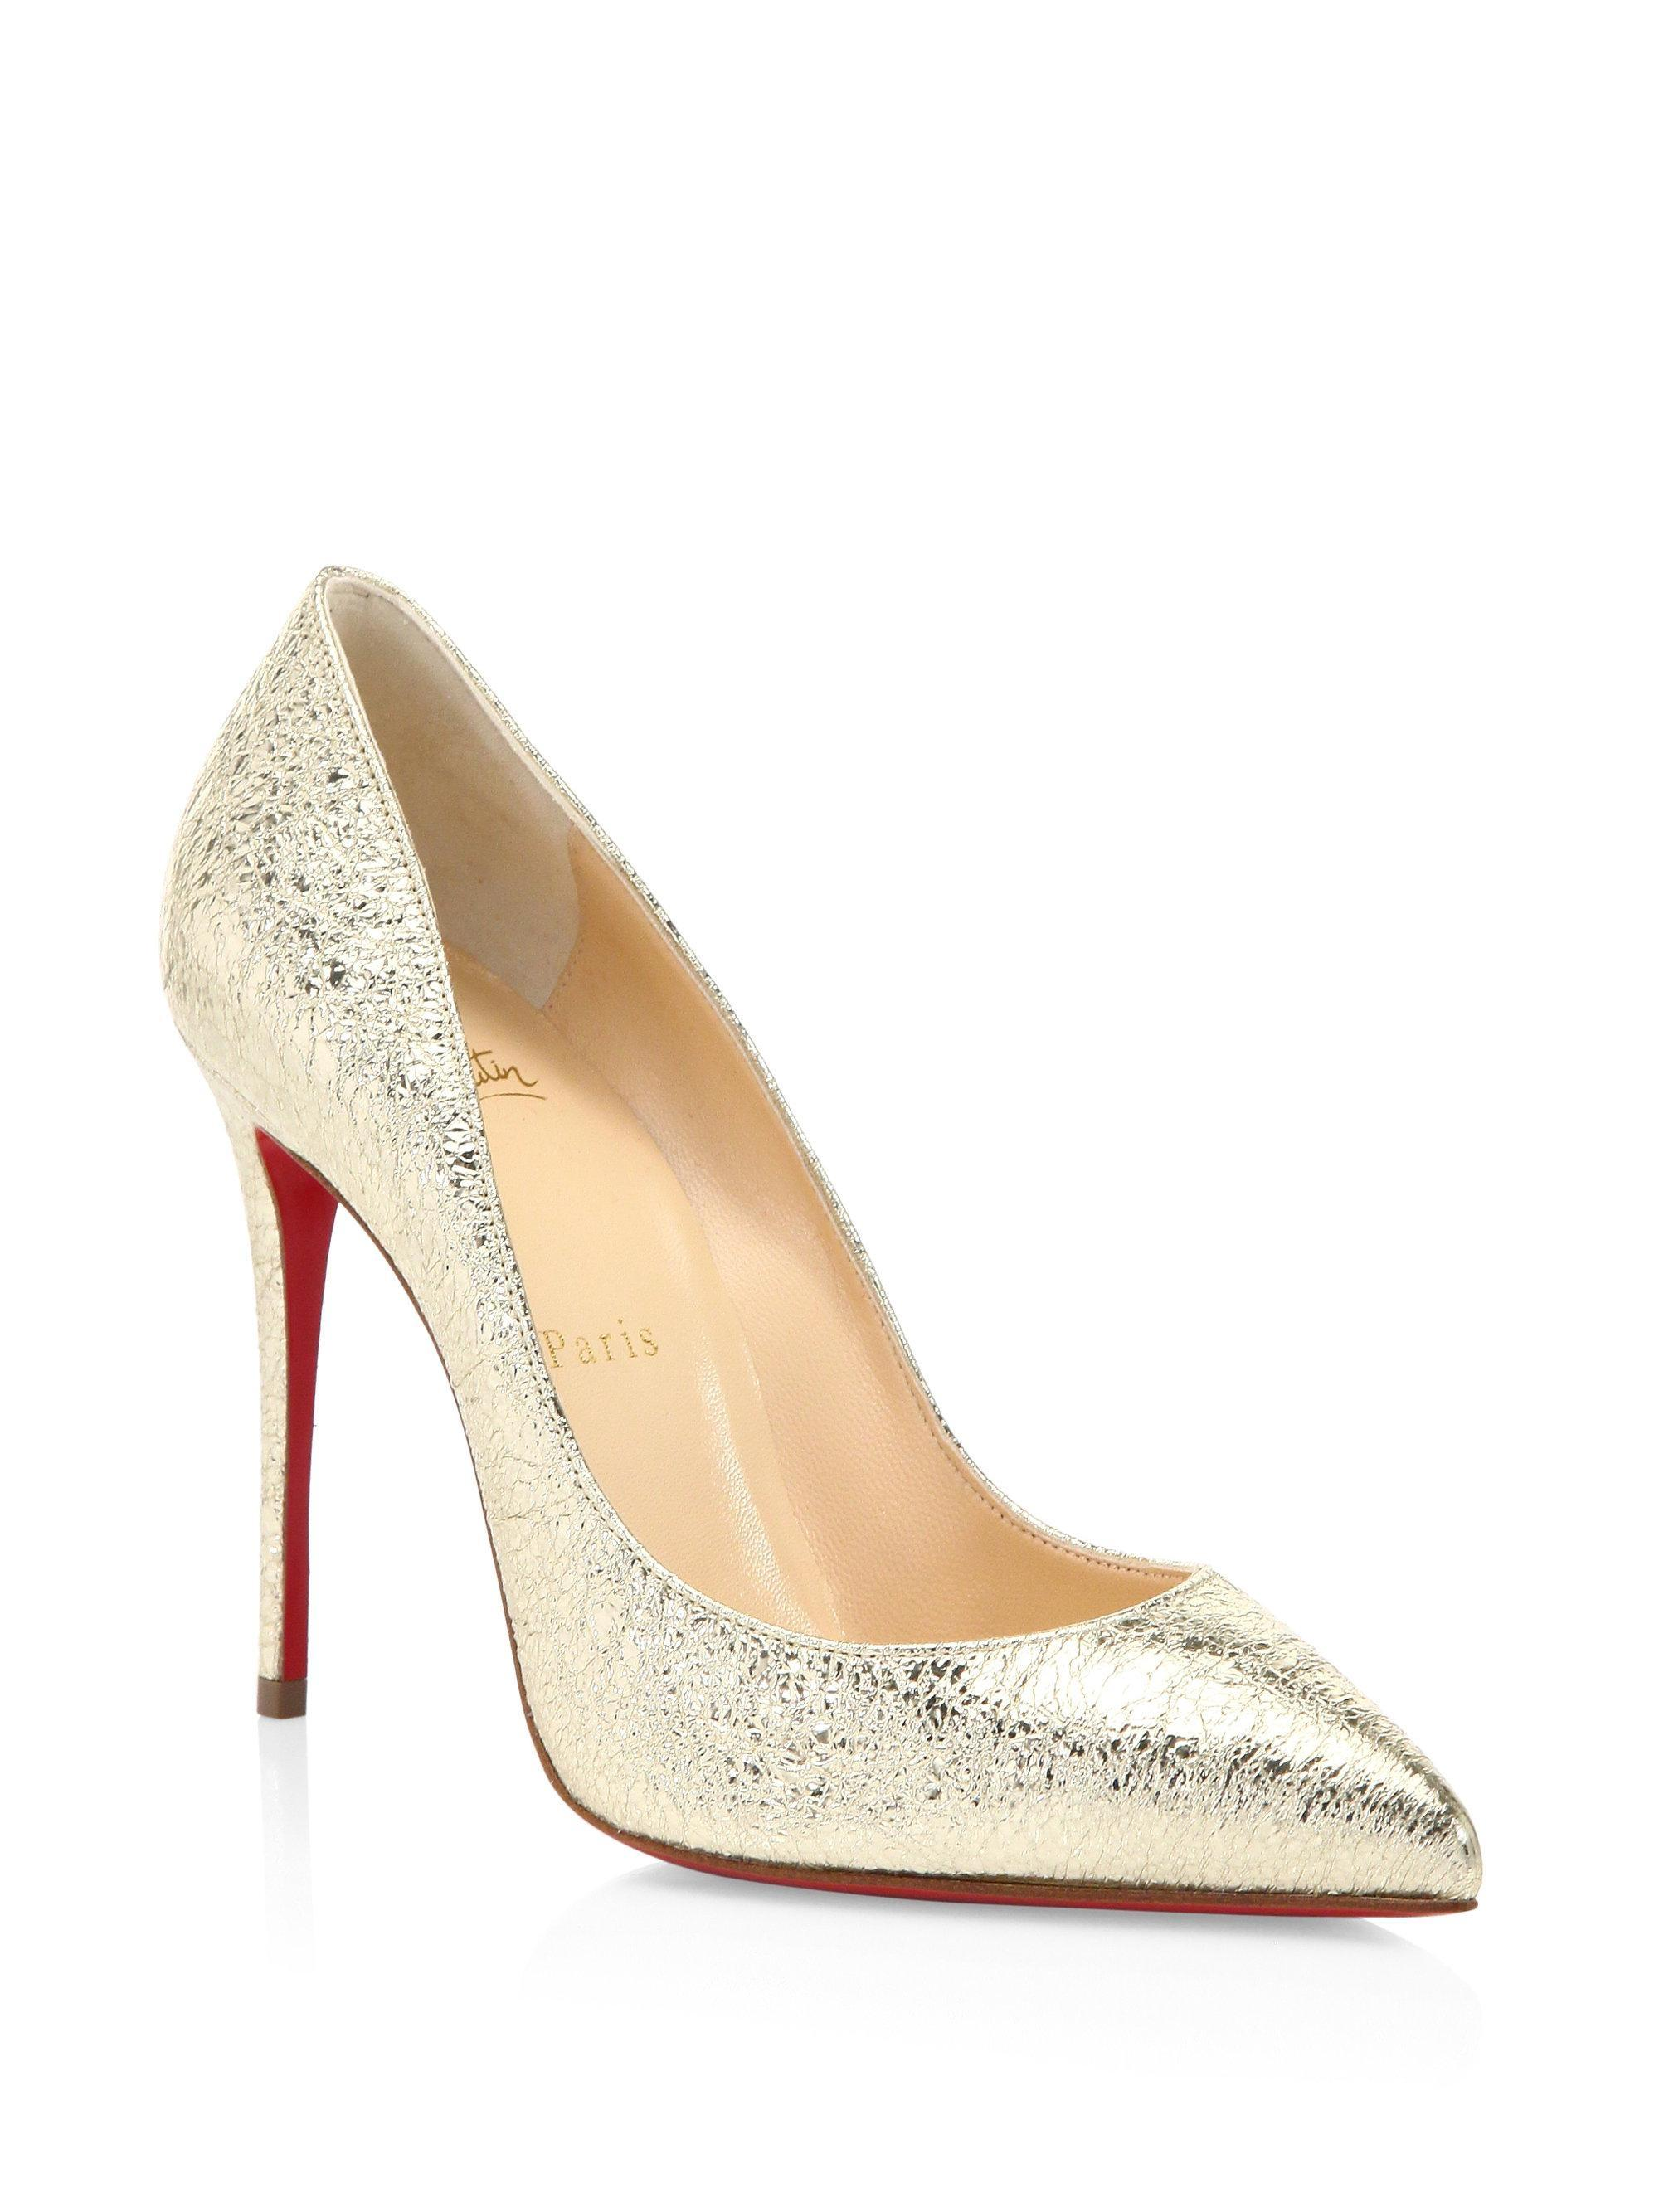 on sale 3758b 53f6c Christian Louboutin Gold Classic Pigalle Follies Follies ...